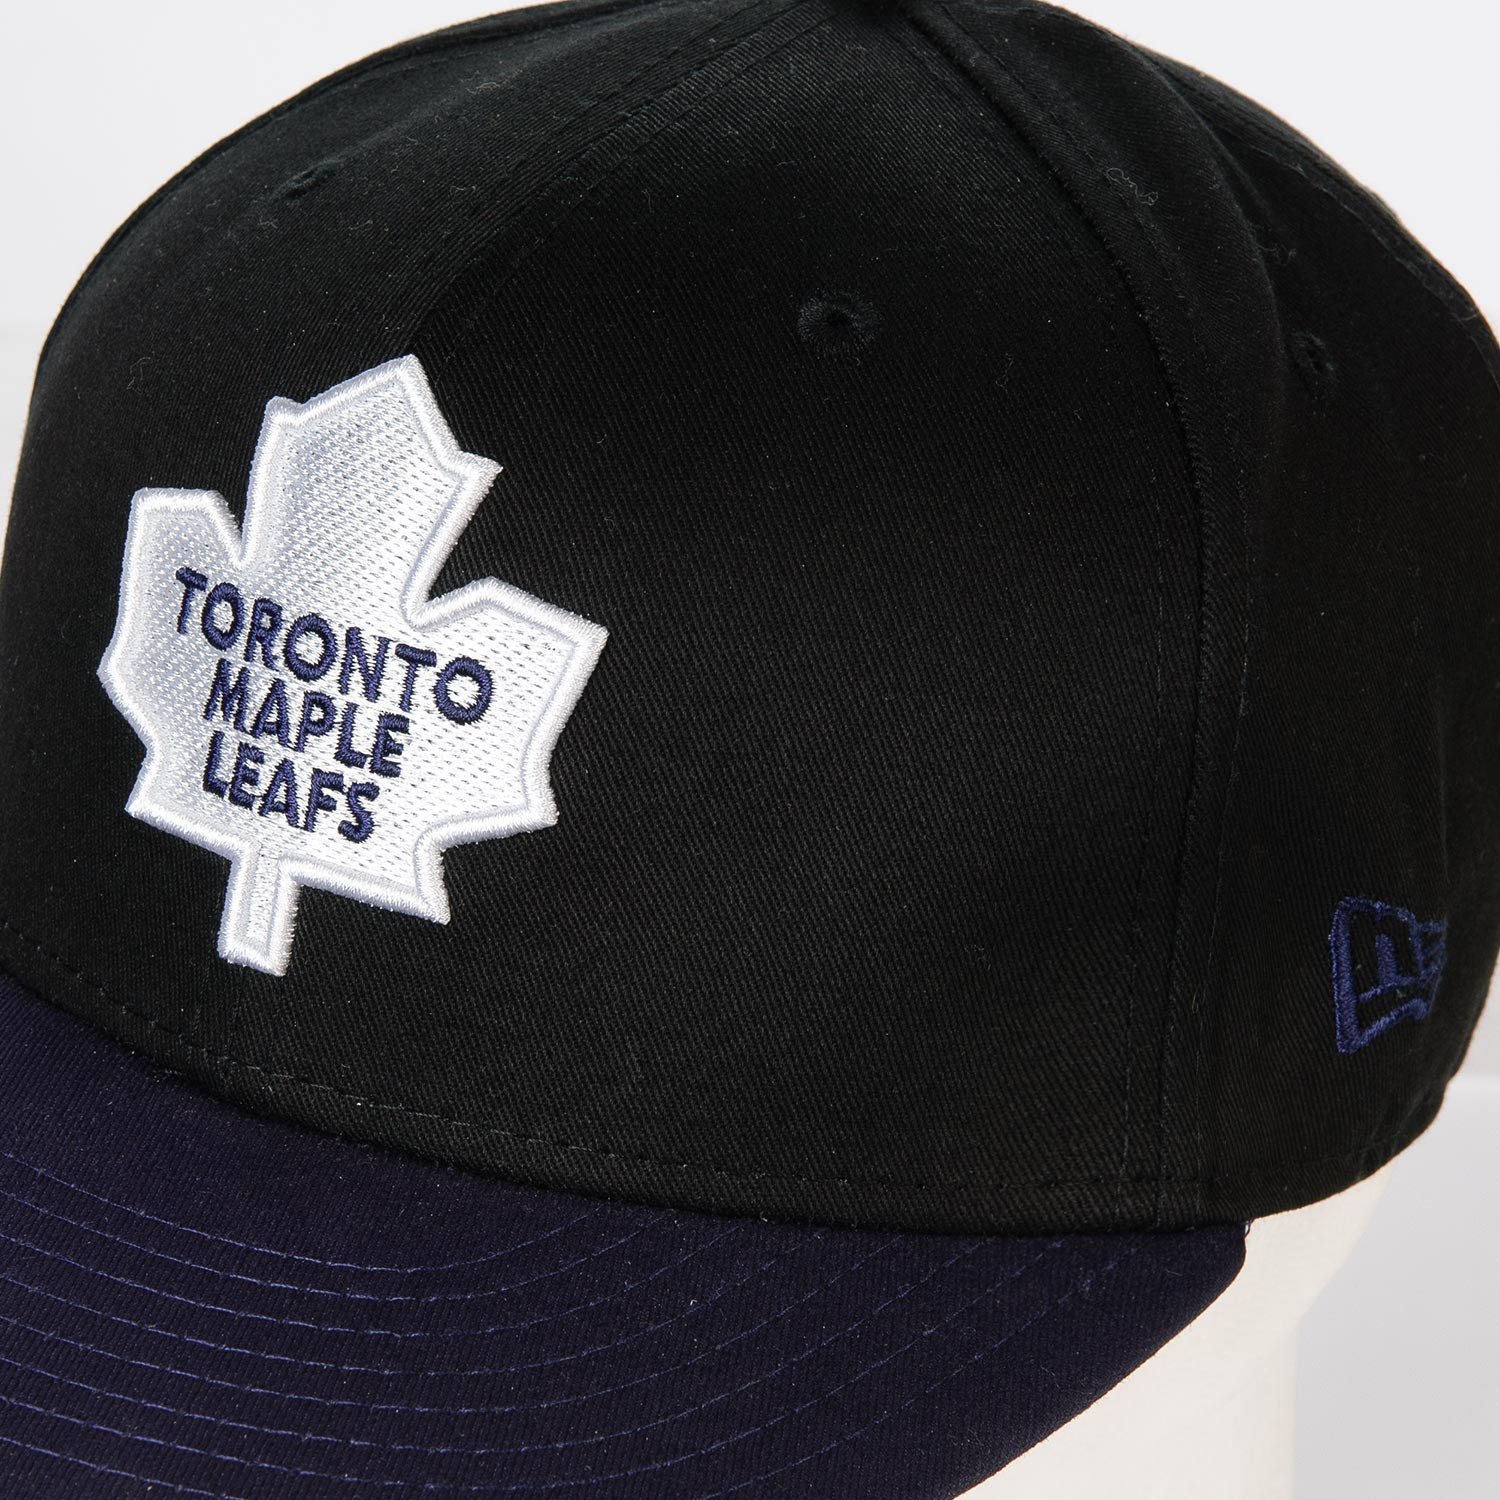 New Era Toronto Maple Leafs 9Fifty Cotton Block